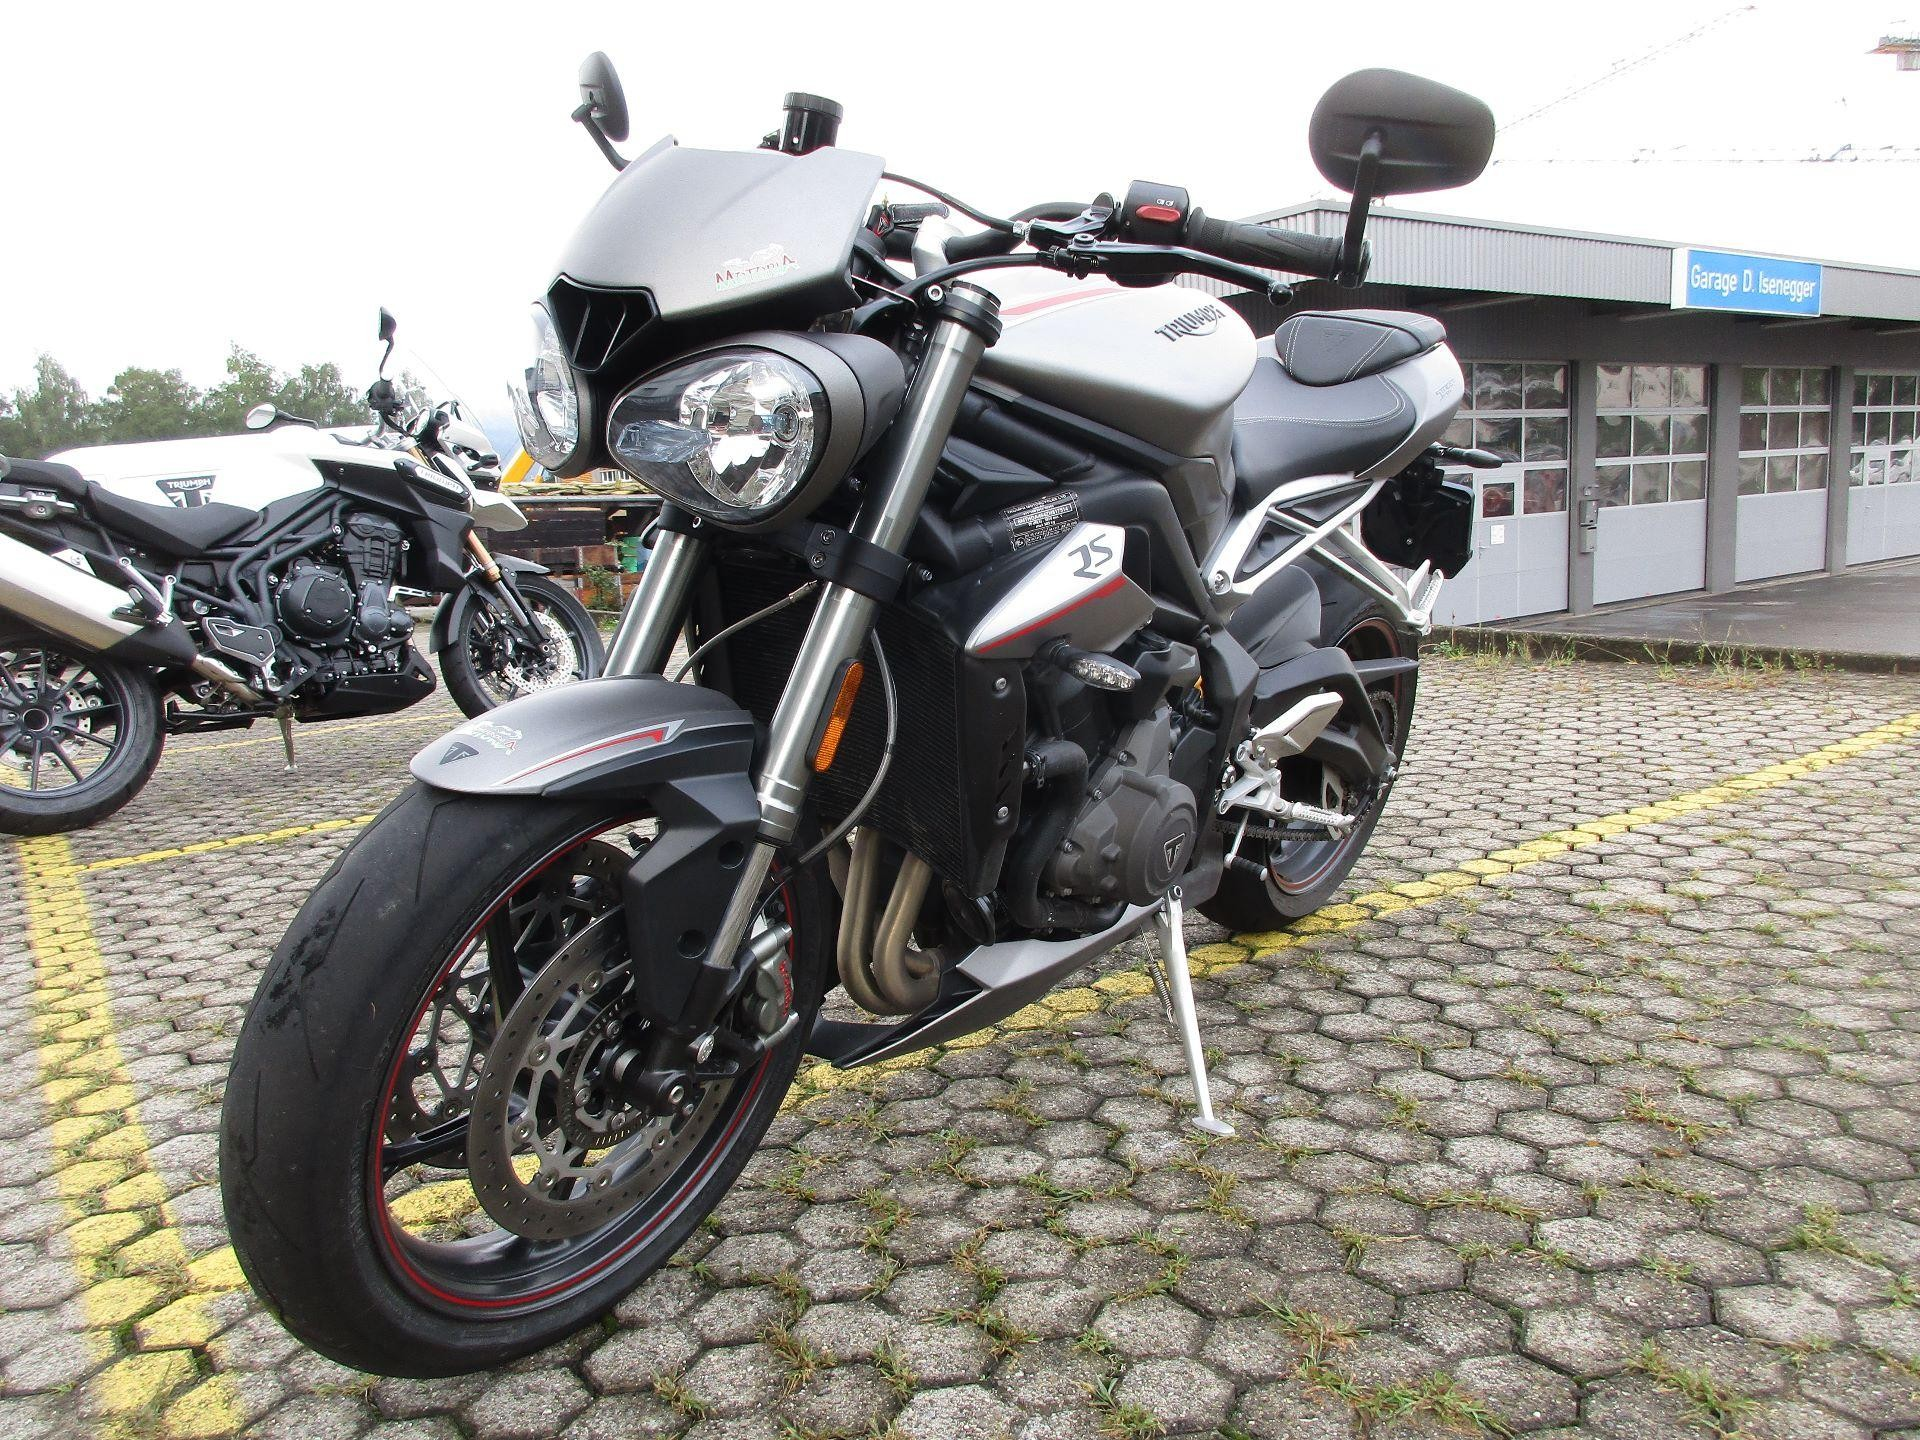 triumph street triple 765 rs motoria gmbh wohlen. Black Bedroom Furniture Sets. Home Design Ideas